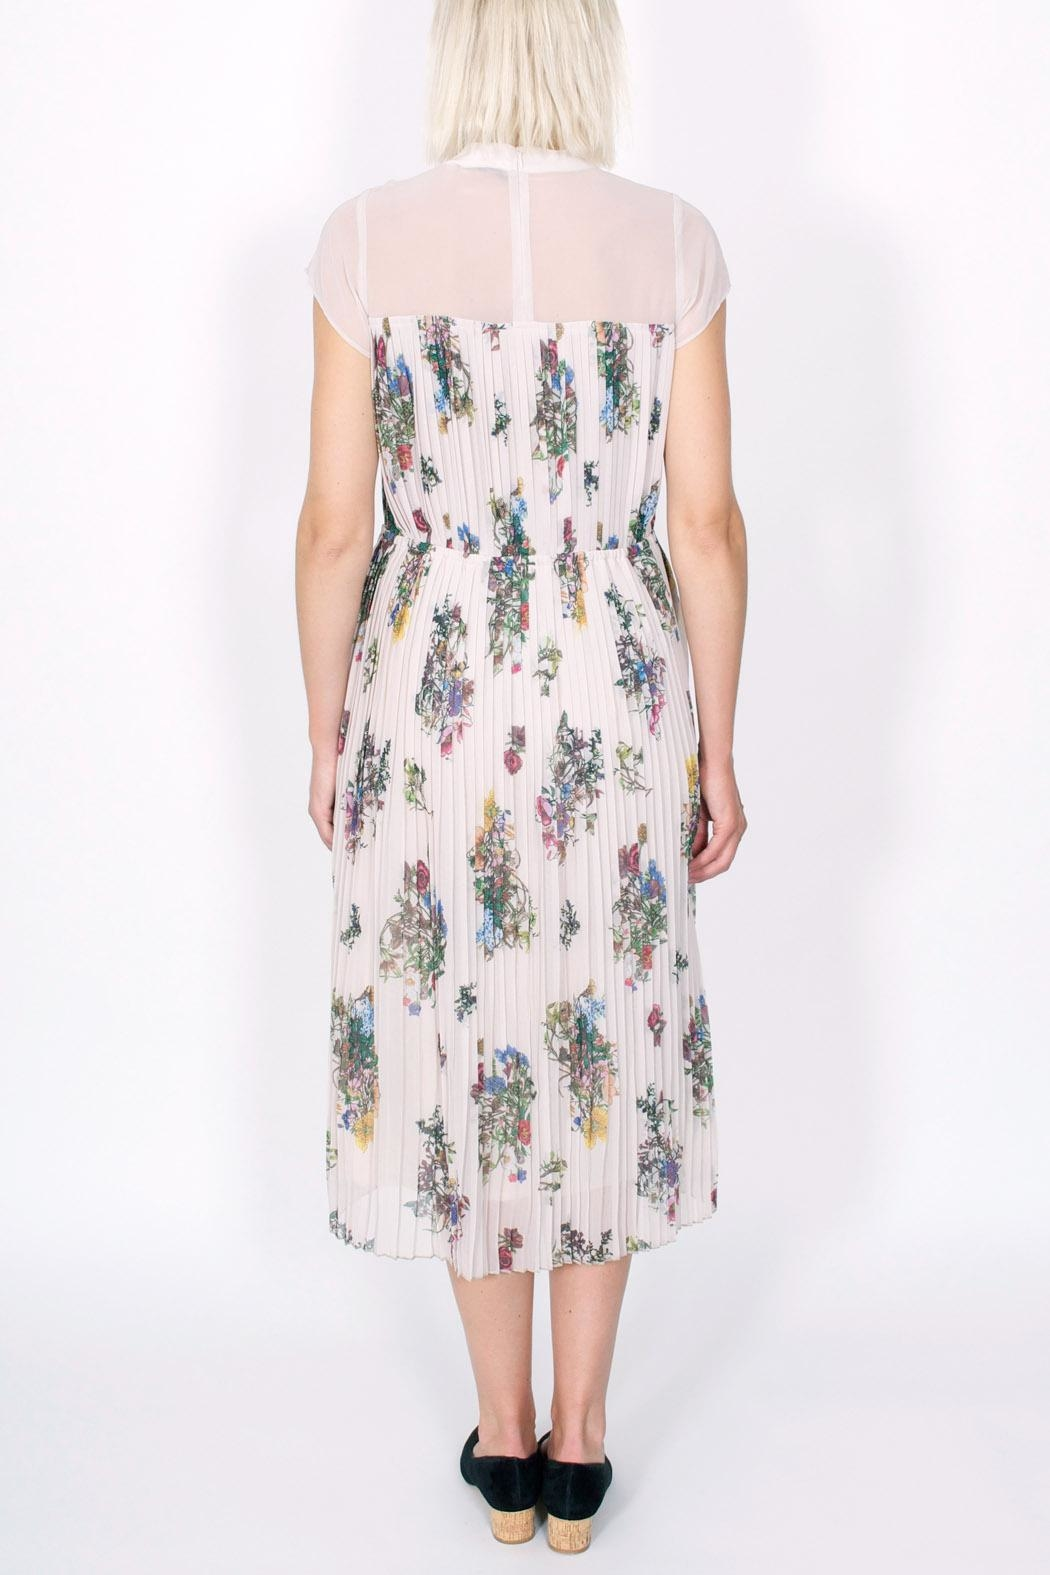 Storm & Marie Palm Floral Dress - Side Cropped Image